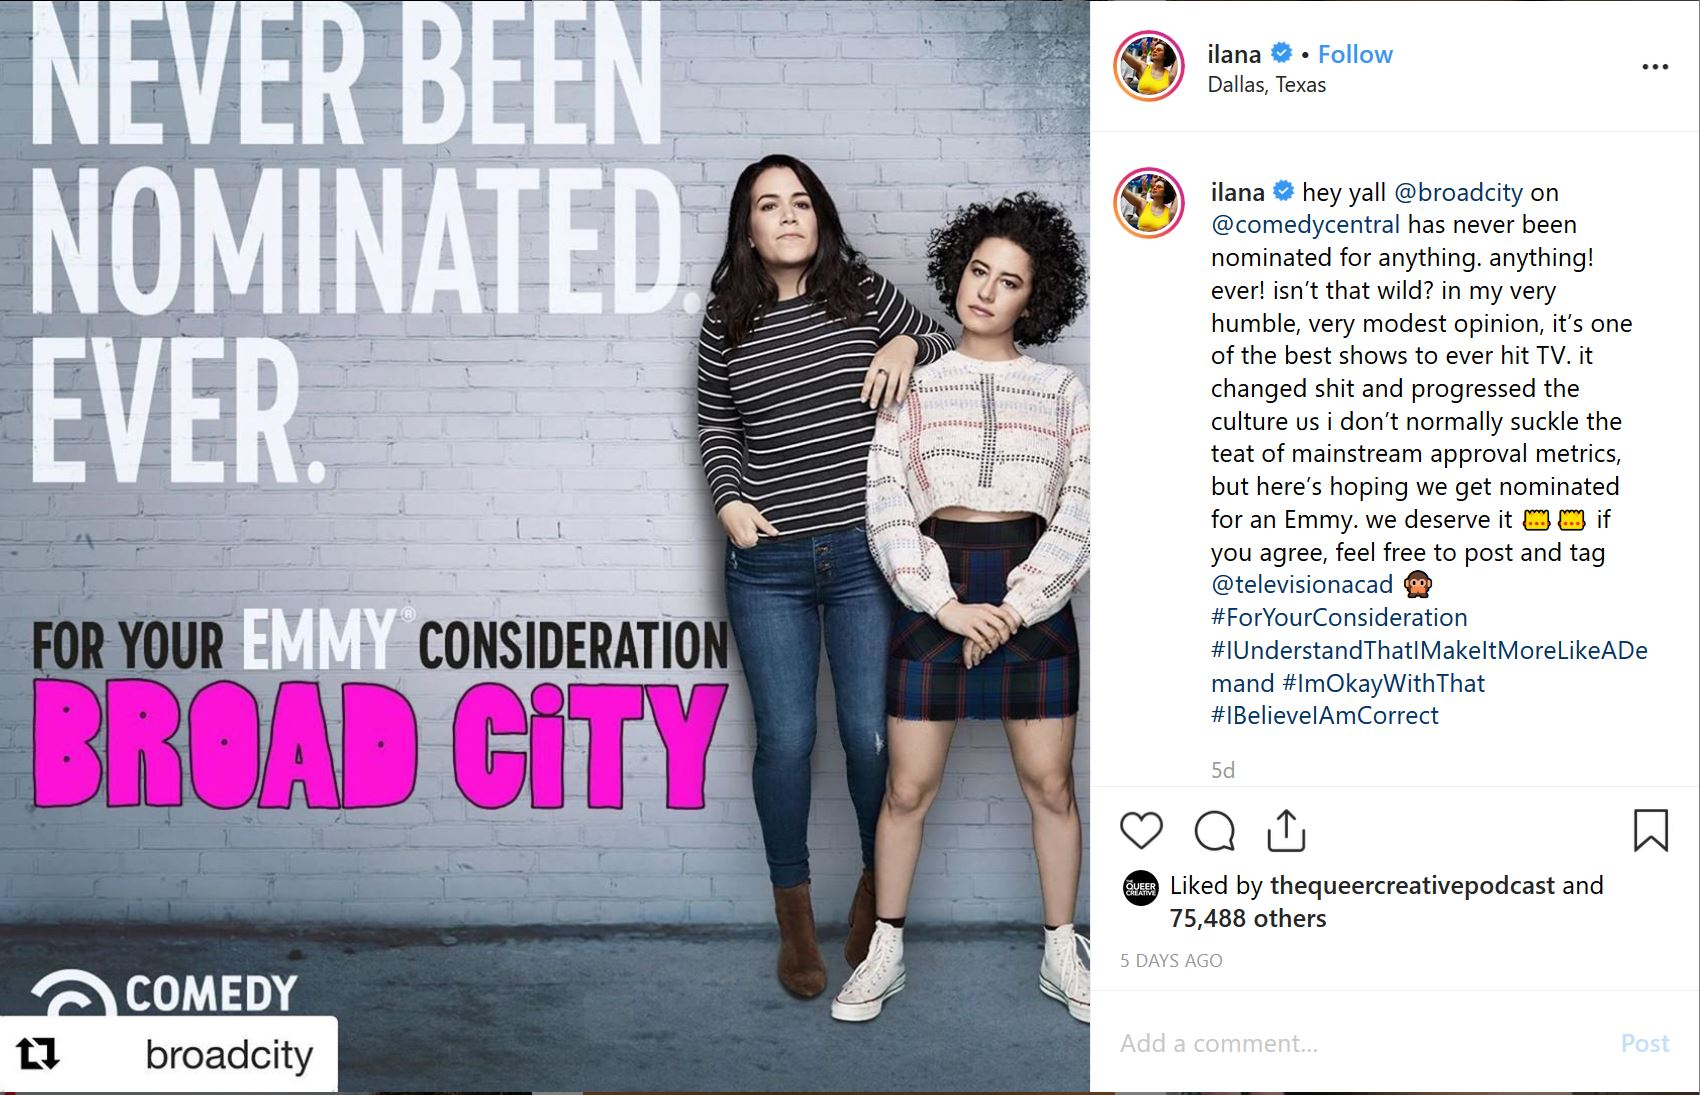 ilana glazer never been nominated Broad City instagram post